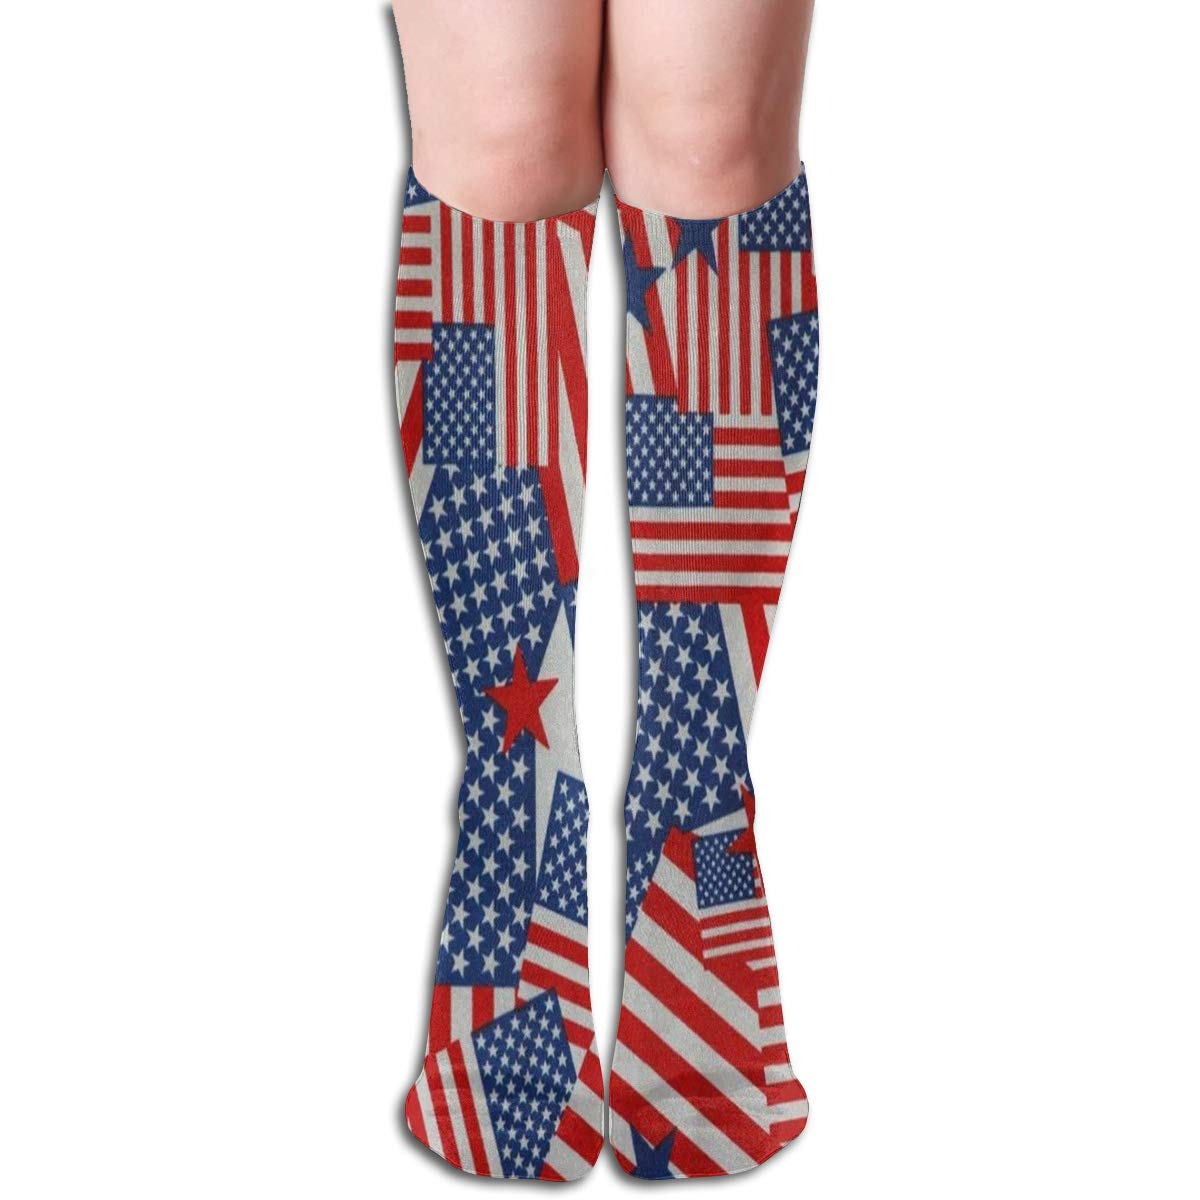 Women Socks Over Knee American Flag Happy Independence Day Winter Customized